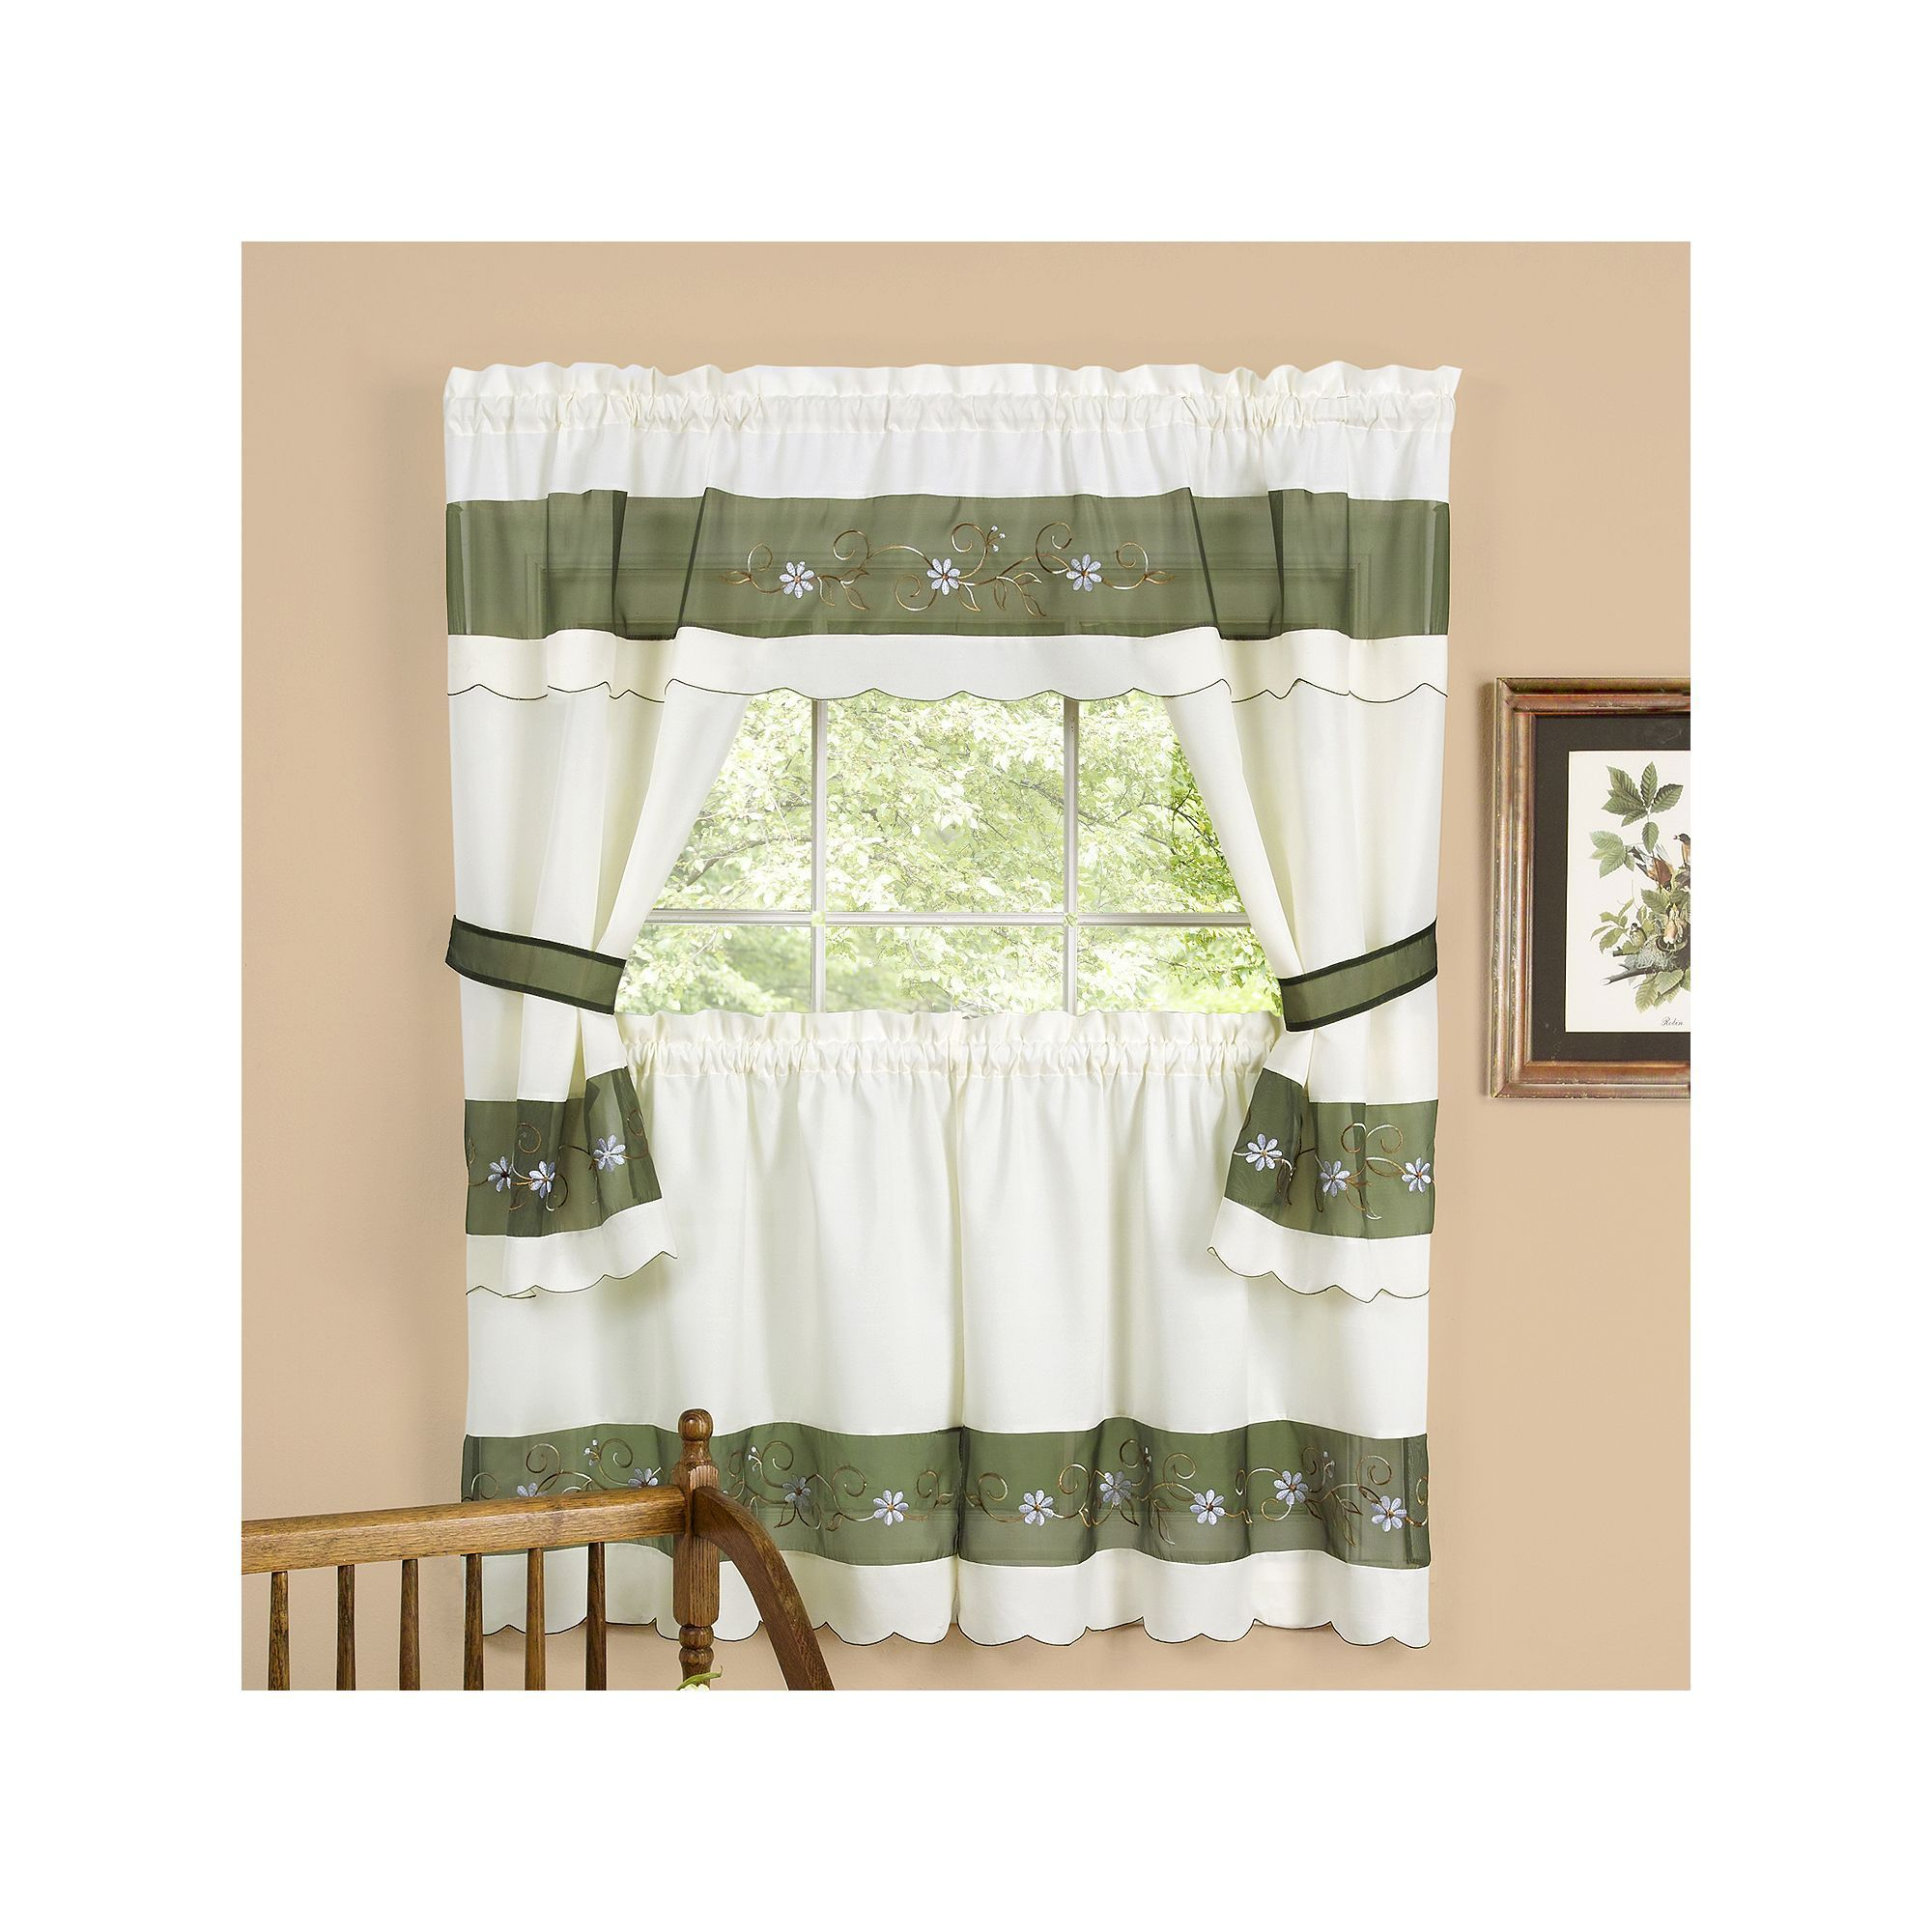 cheap of online curtains curtain phenomenal decor full style cafe bedroom size drapes country window for french cottage kitchen primitive treatments valances farmhouse